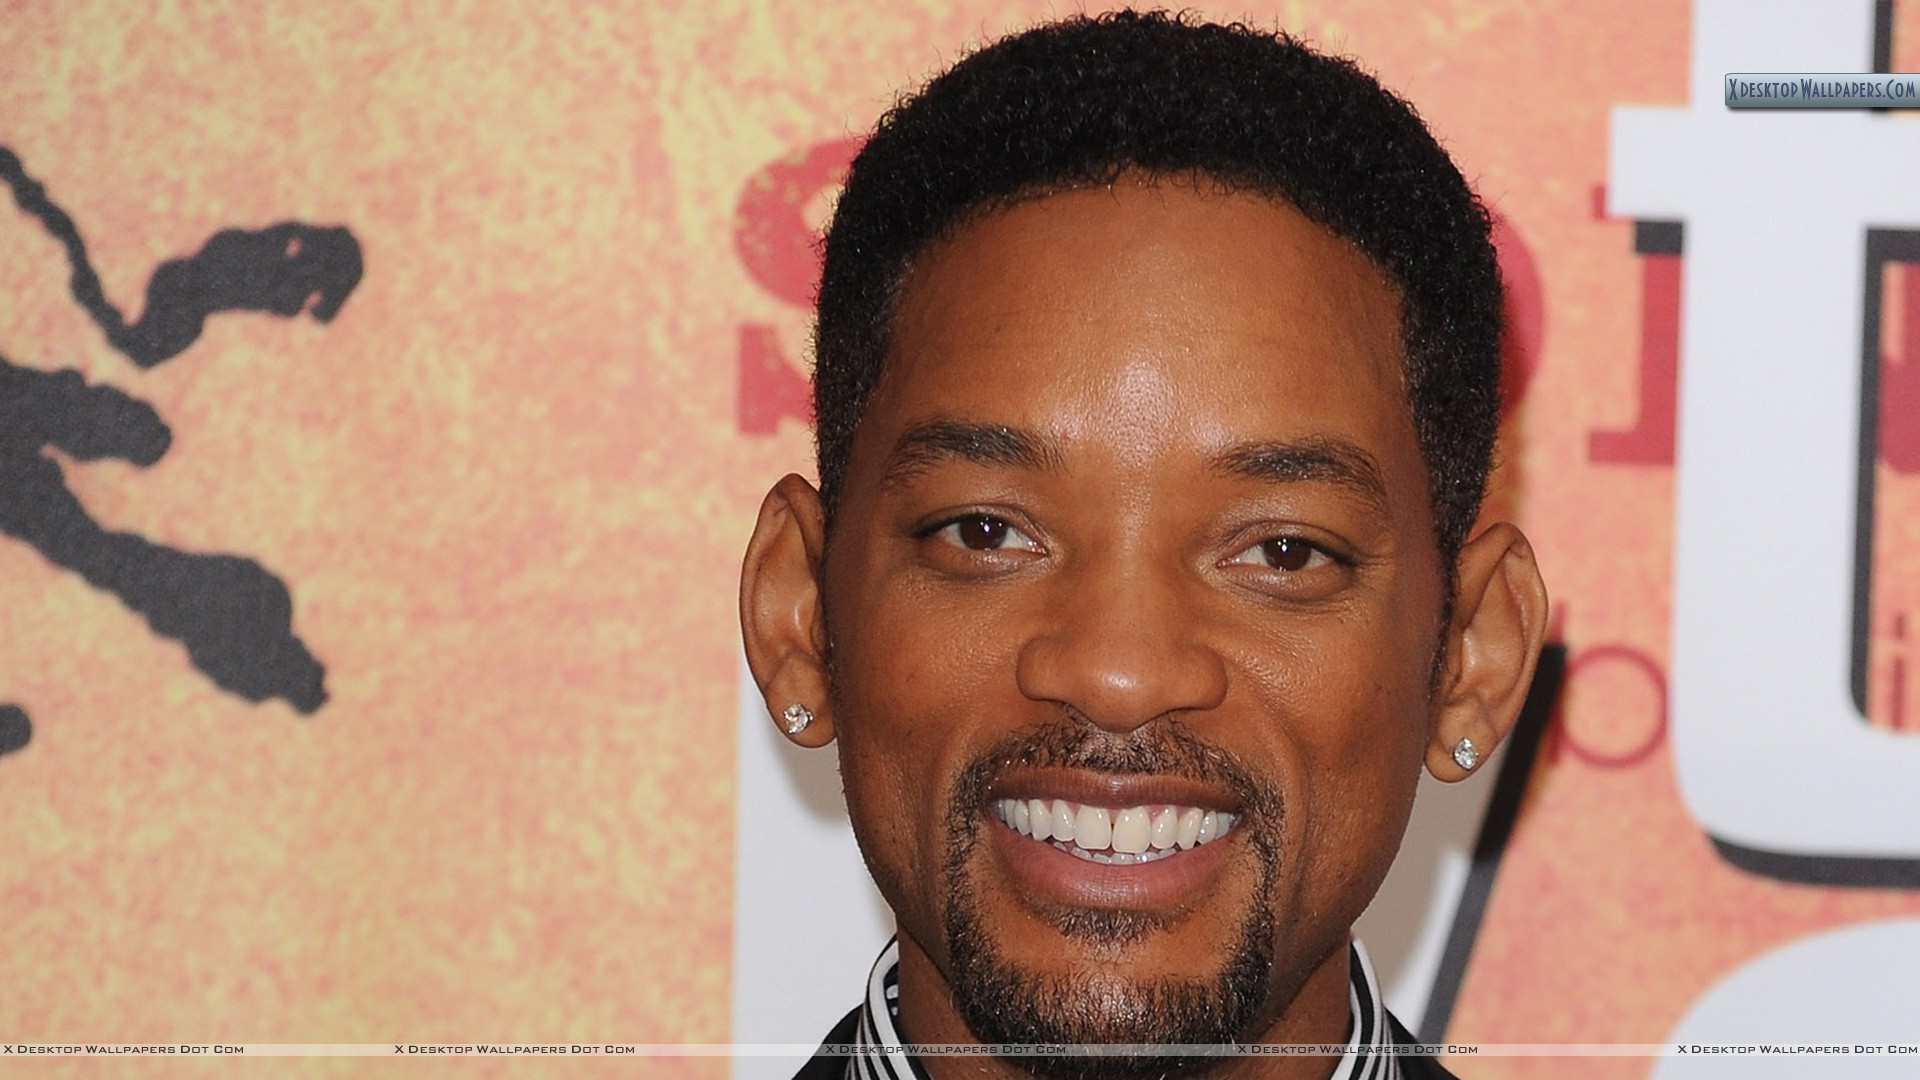 Will Smith Smiling & Looking Front Closeup Wallpaper